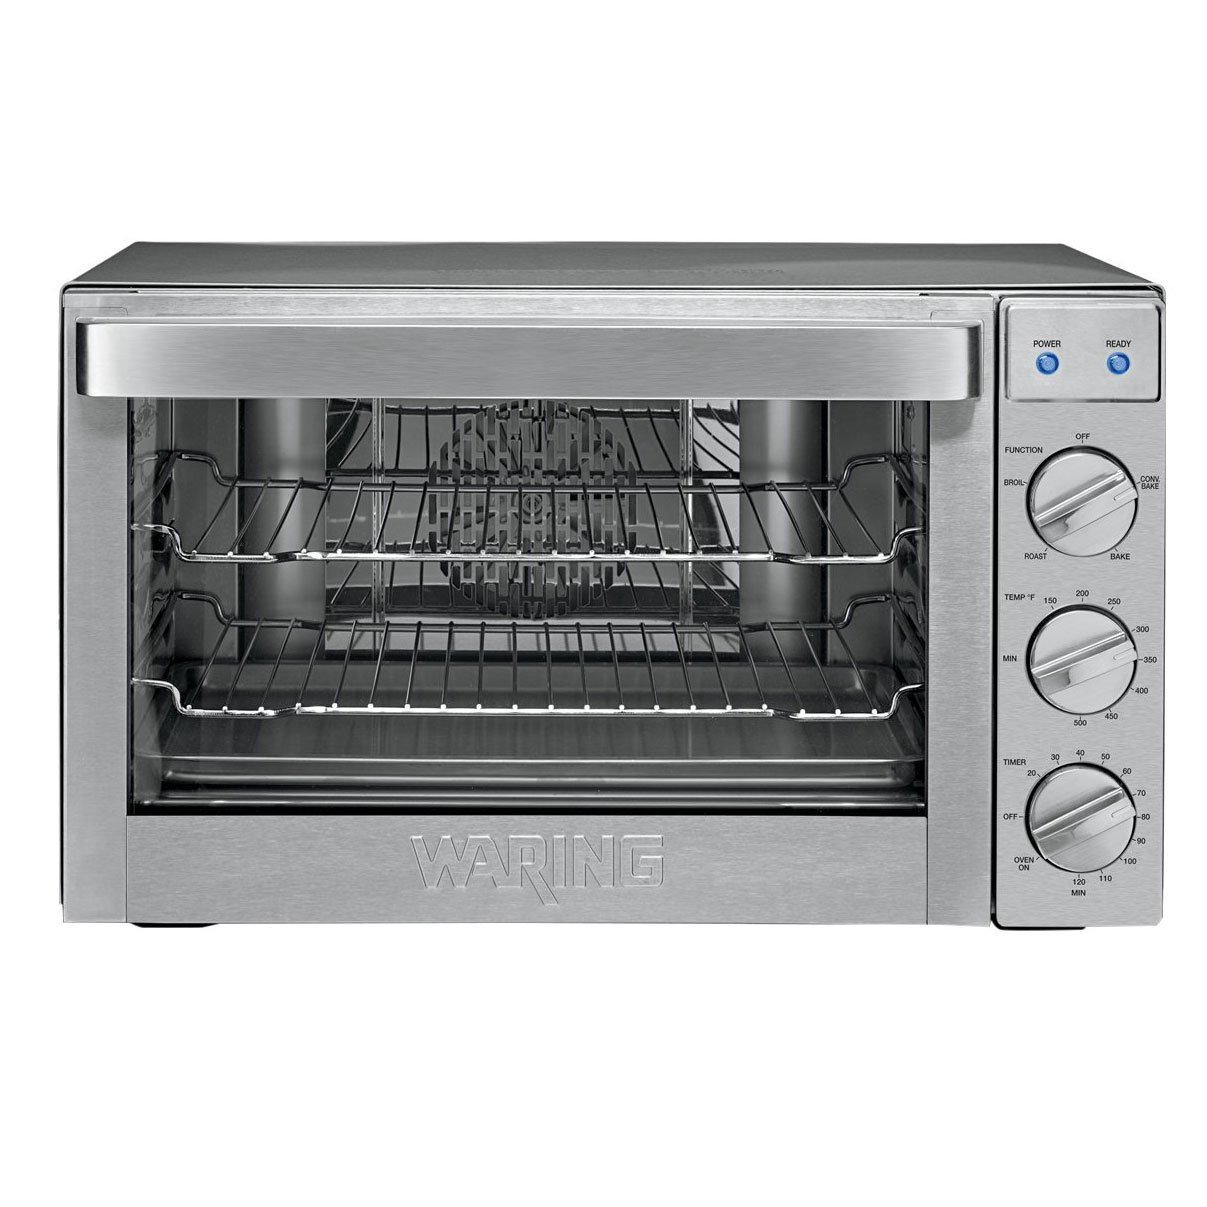 Waring Pro Co1600wr Stainless Steel Convection Countertop Large Toaster Oven Toasty Ovens